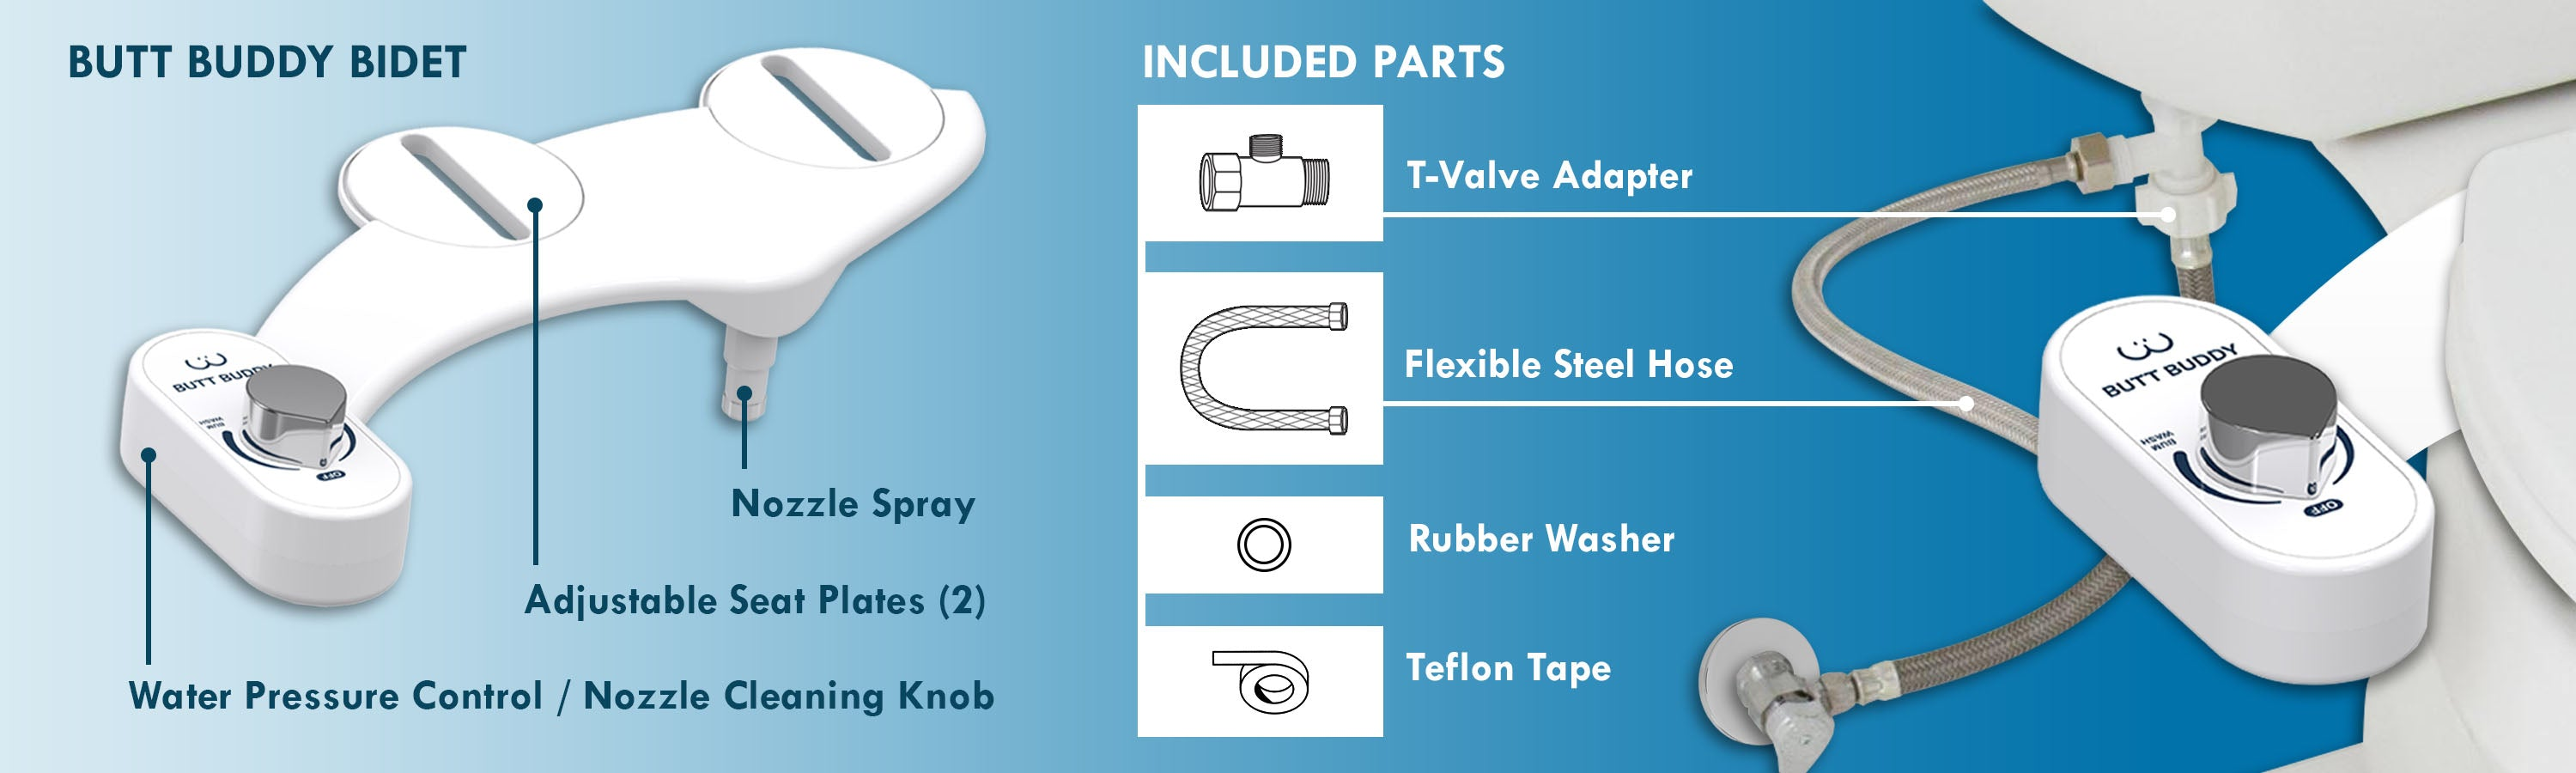 In My Bathroom (IMB) | Butt Buddy - Bidet Toilet Attachment - Fresh Water Sprayer - What's In The Box - Included Parts - Warranty - T-Valve Adapter - Flexible Steel Hose - Teflon Tape - Rubber Washer - Water Pressure Control - Nozzle Spray - BBB.jpg